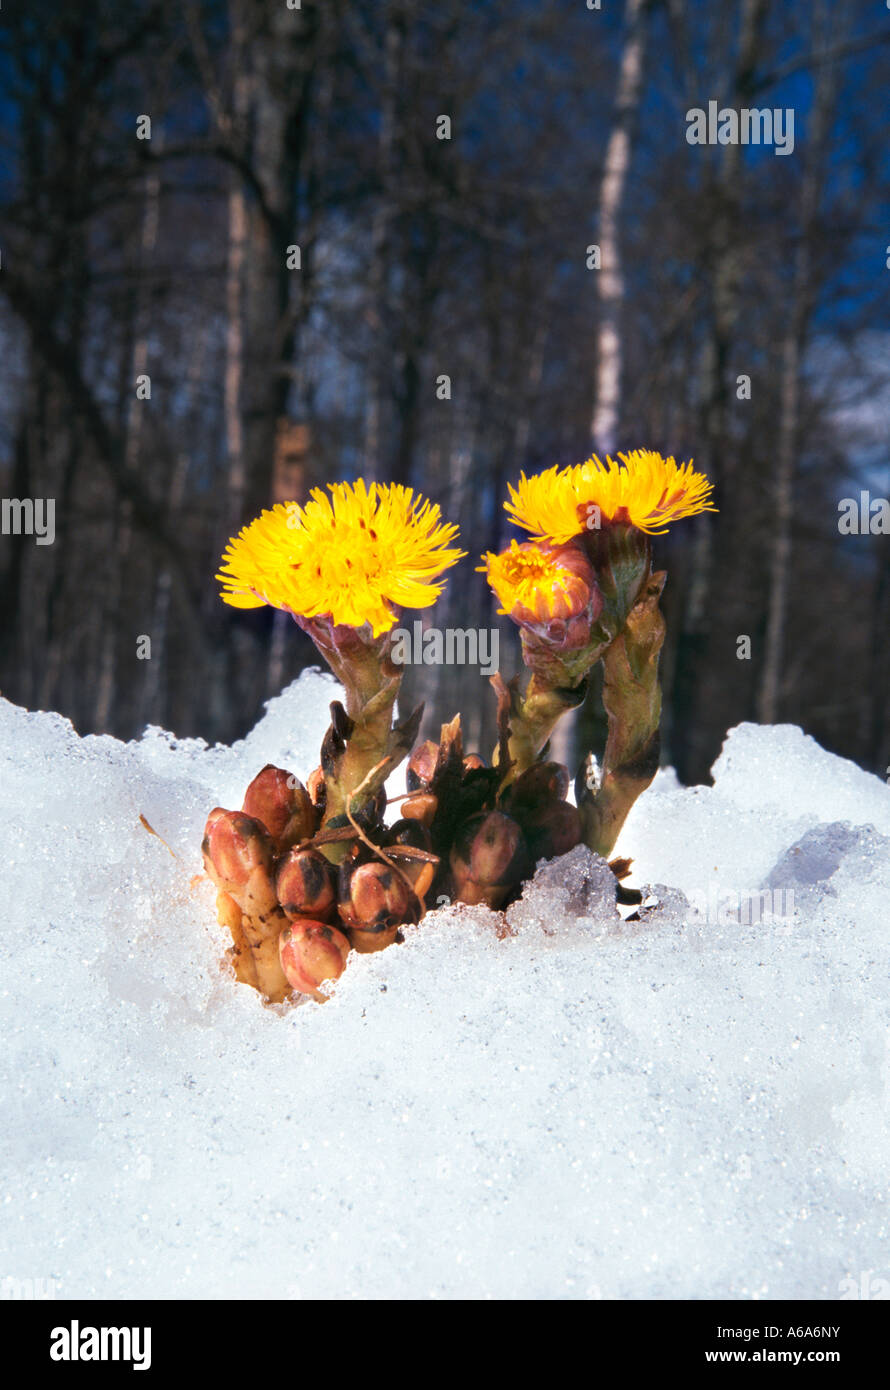 Early spring flower - Stock Image